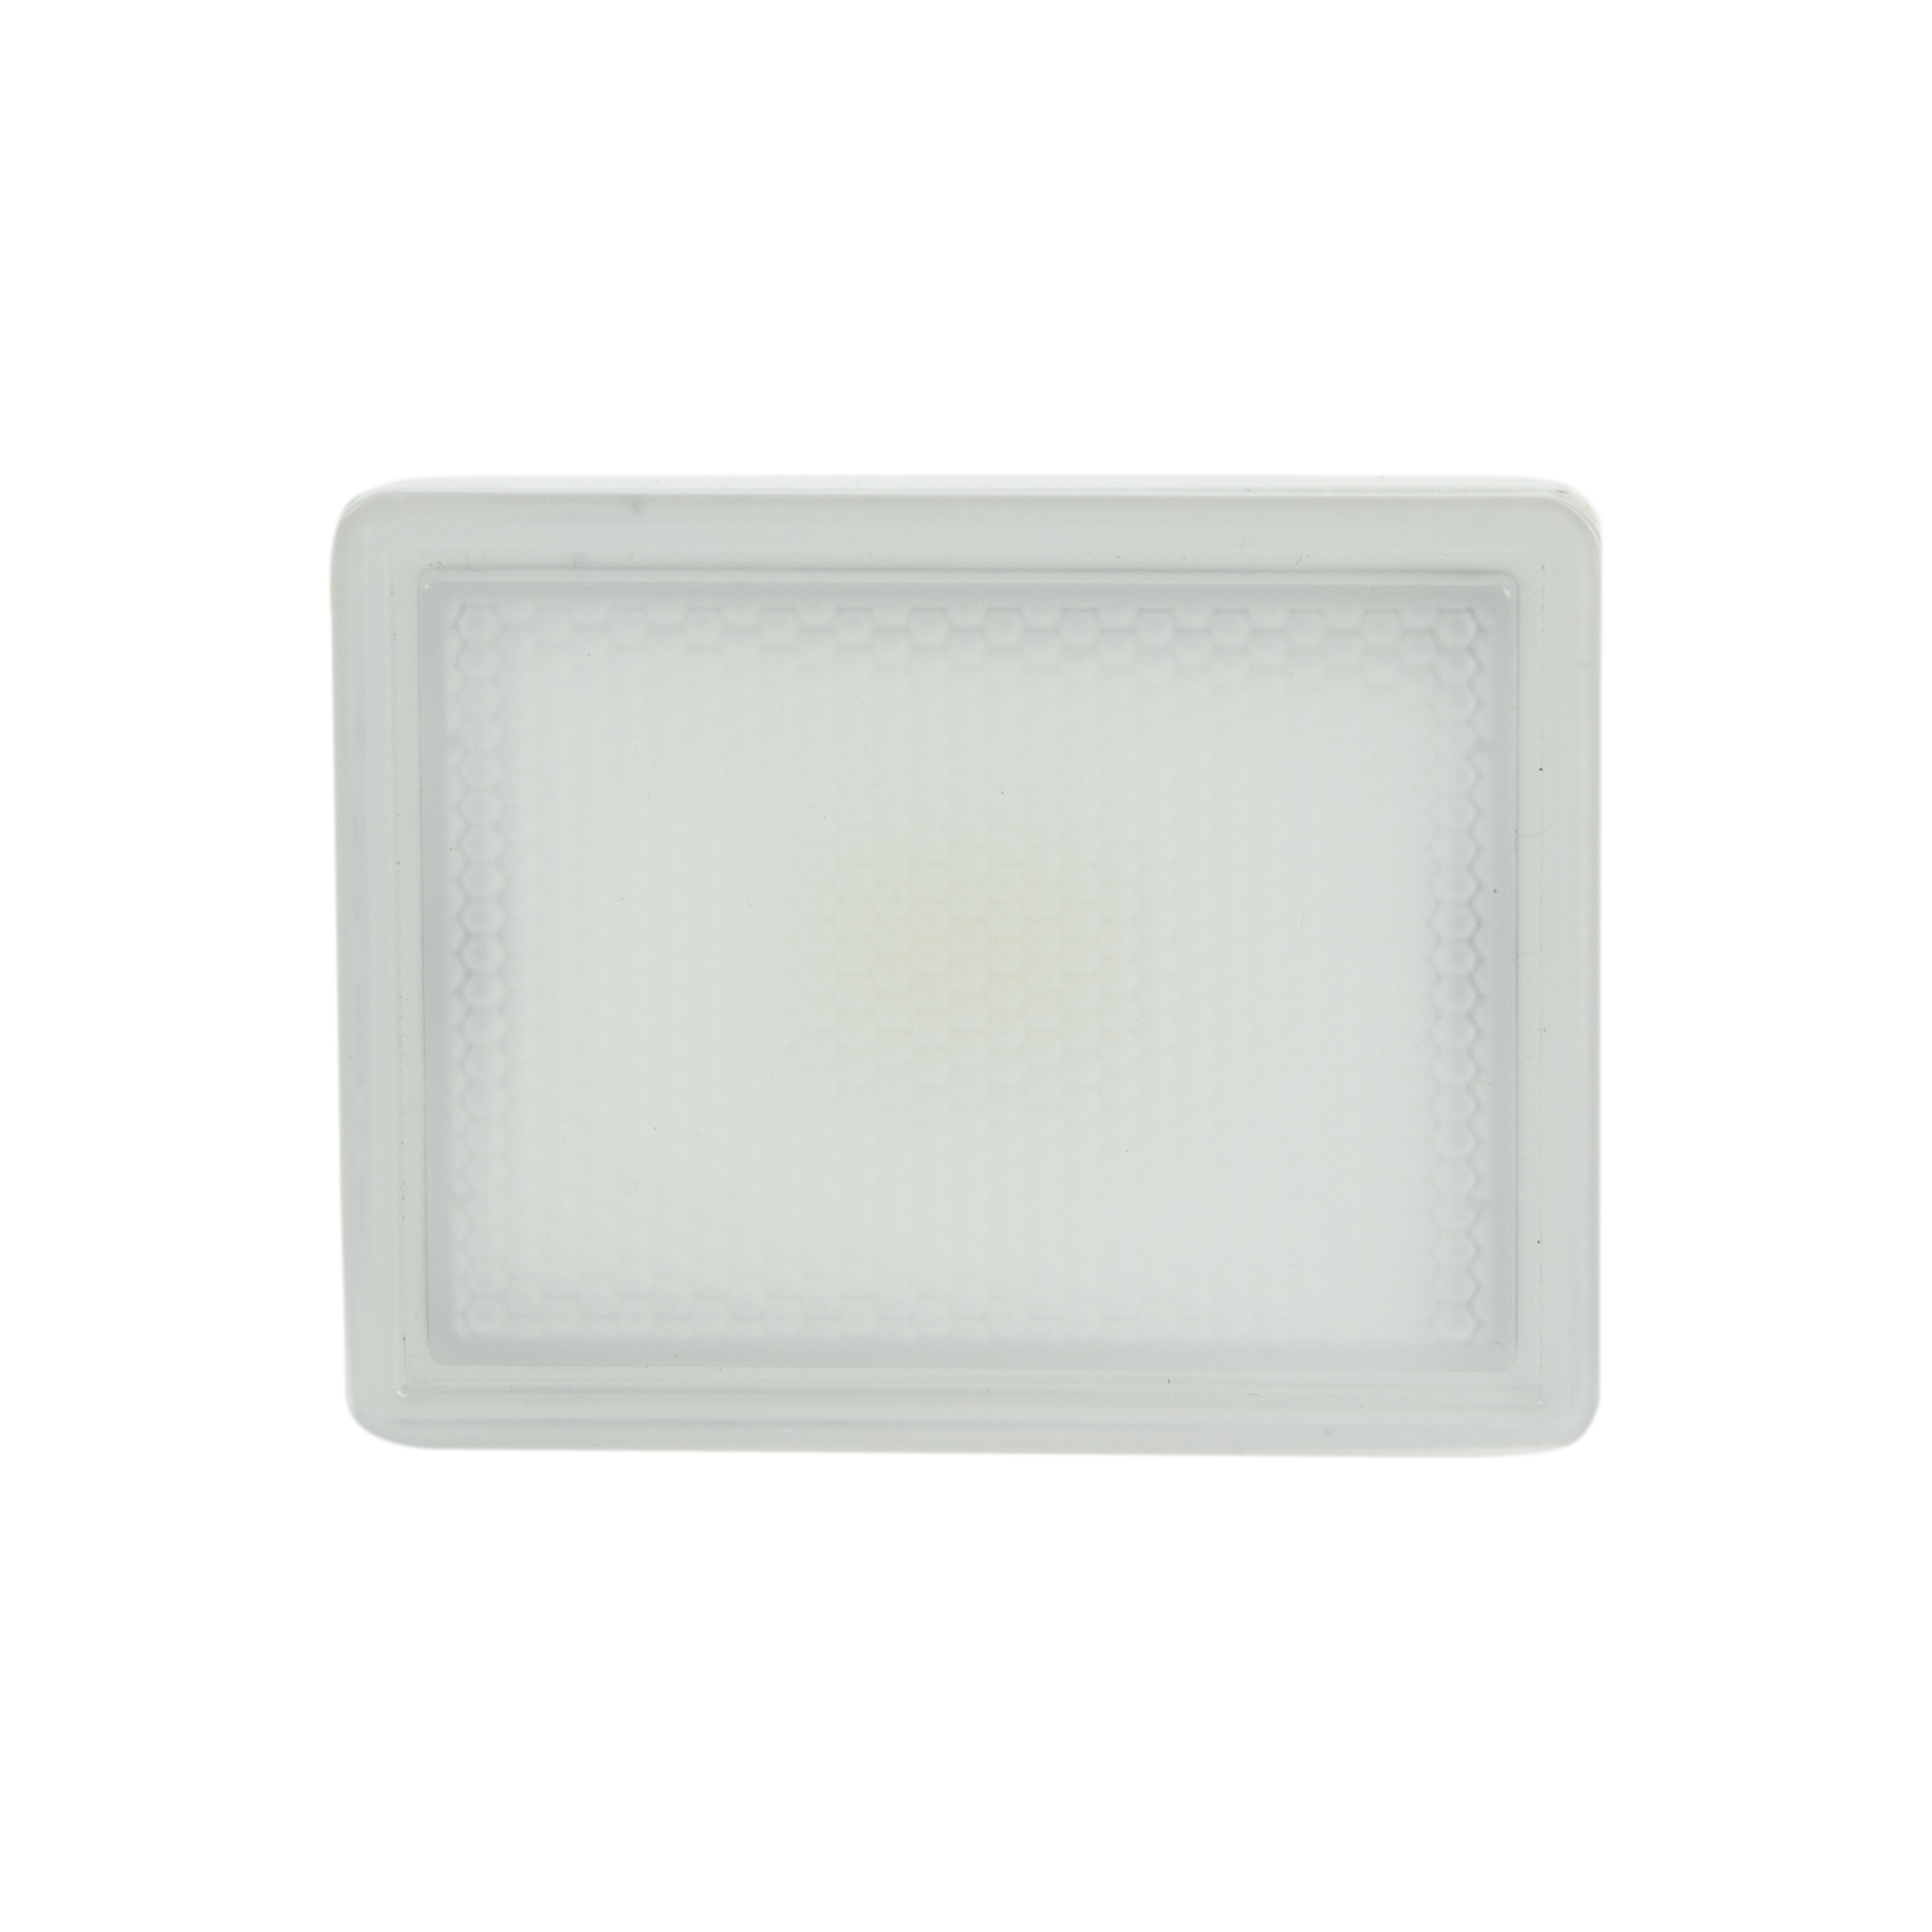 Adjustable LED wall mounted projector, 800 lumens, cool white